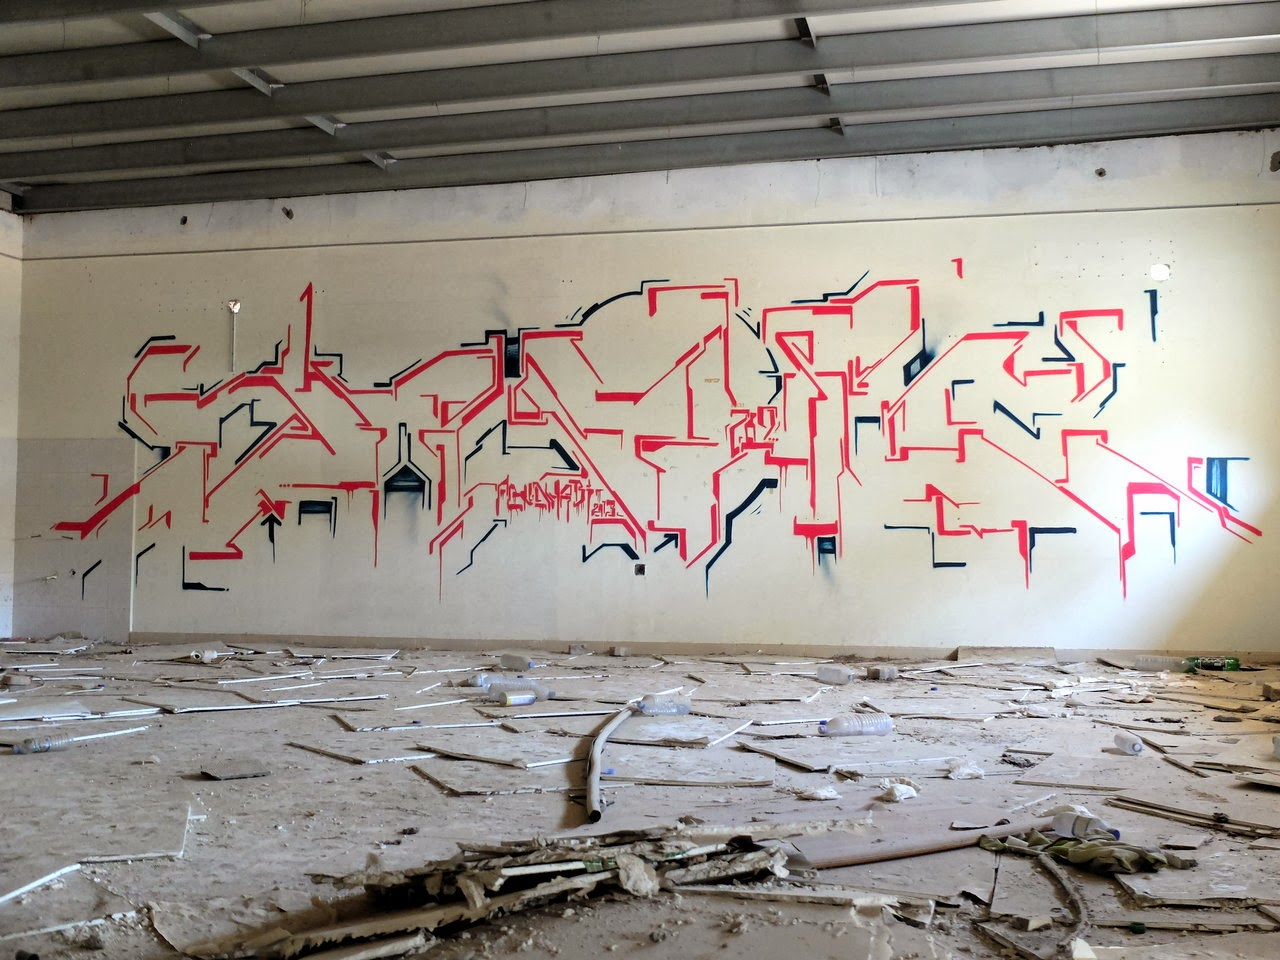 S.Kape289 Graffiti art